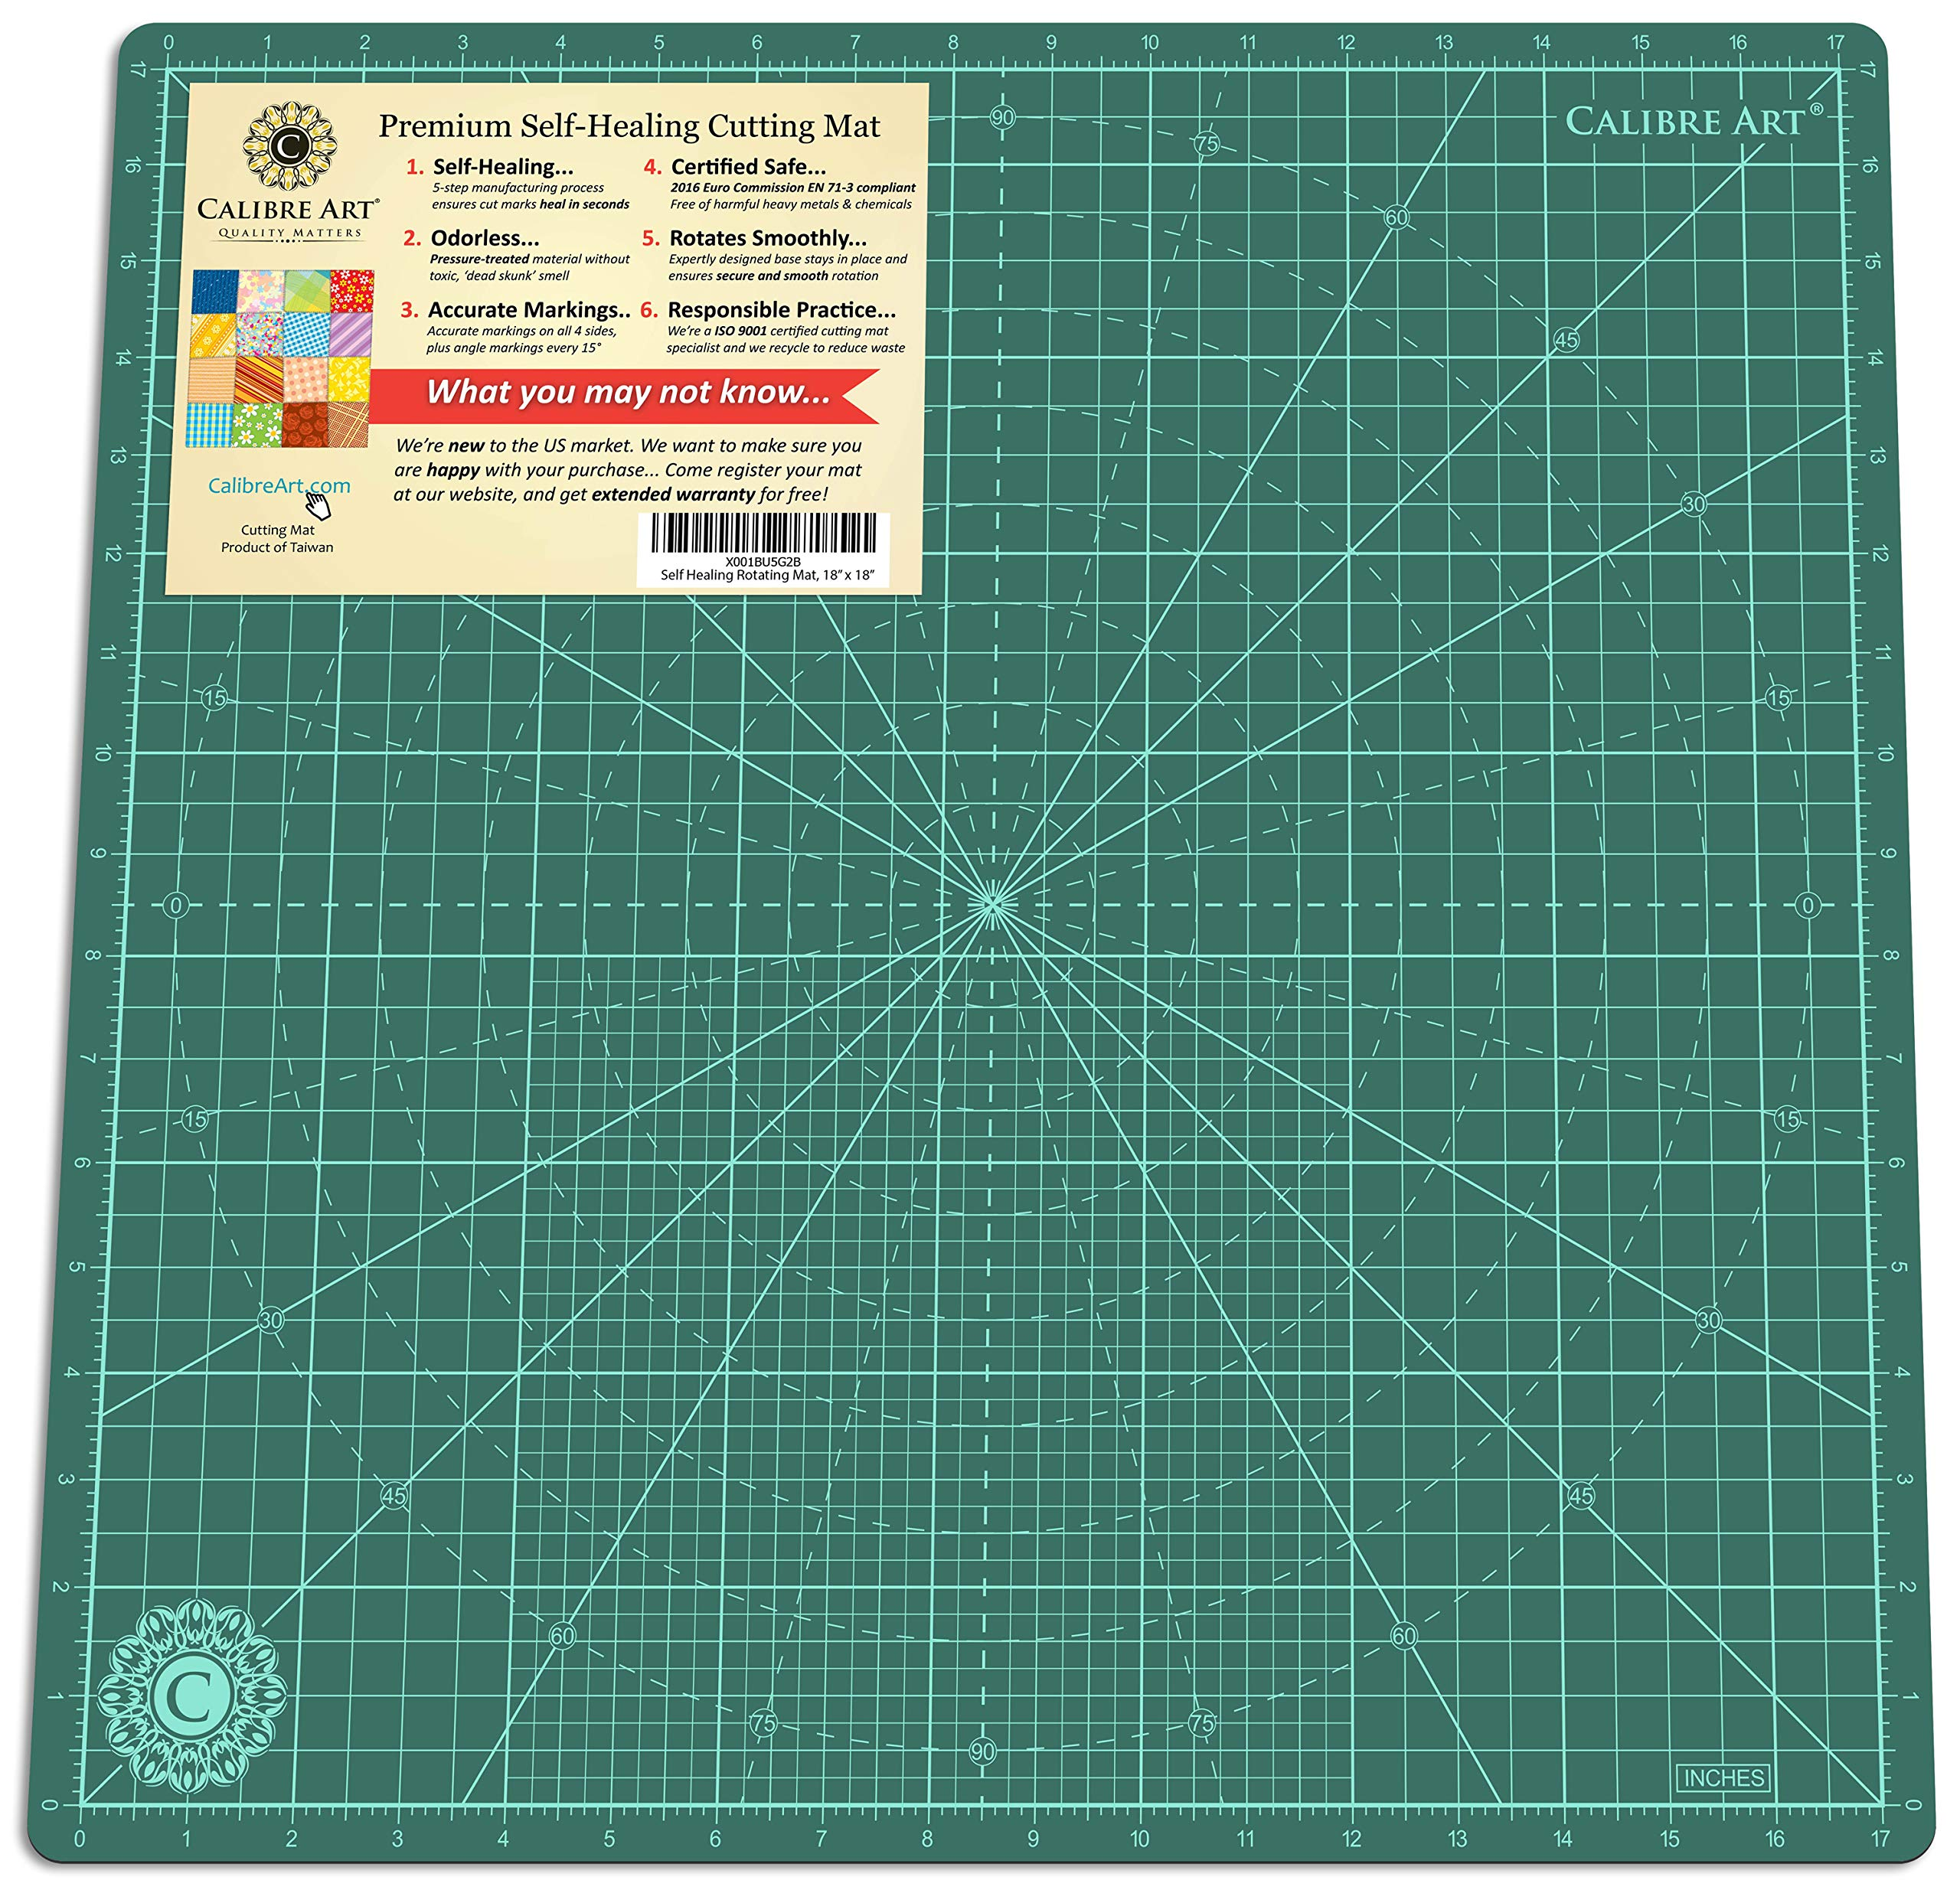 Calibre Art Self Healing Rotating Cutting Mat, Perfect for Quilting & Art Projects, 18x18 (17'' Grid) by Calibre Art